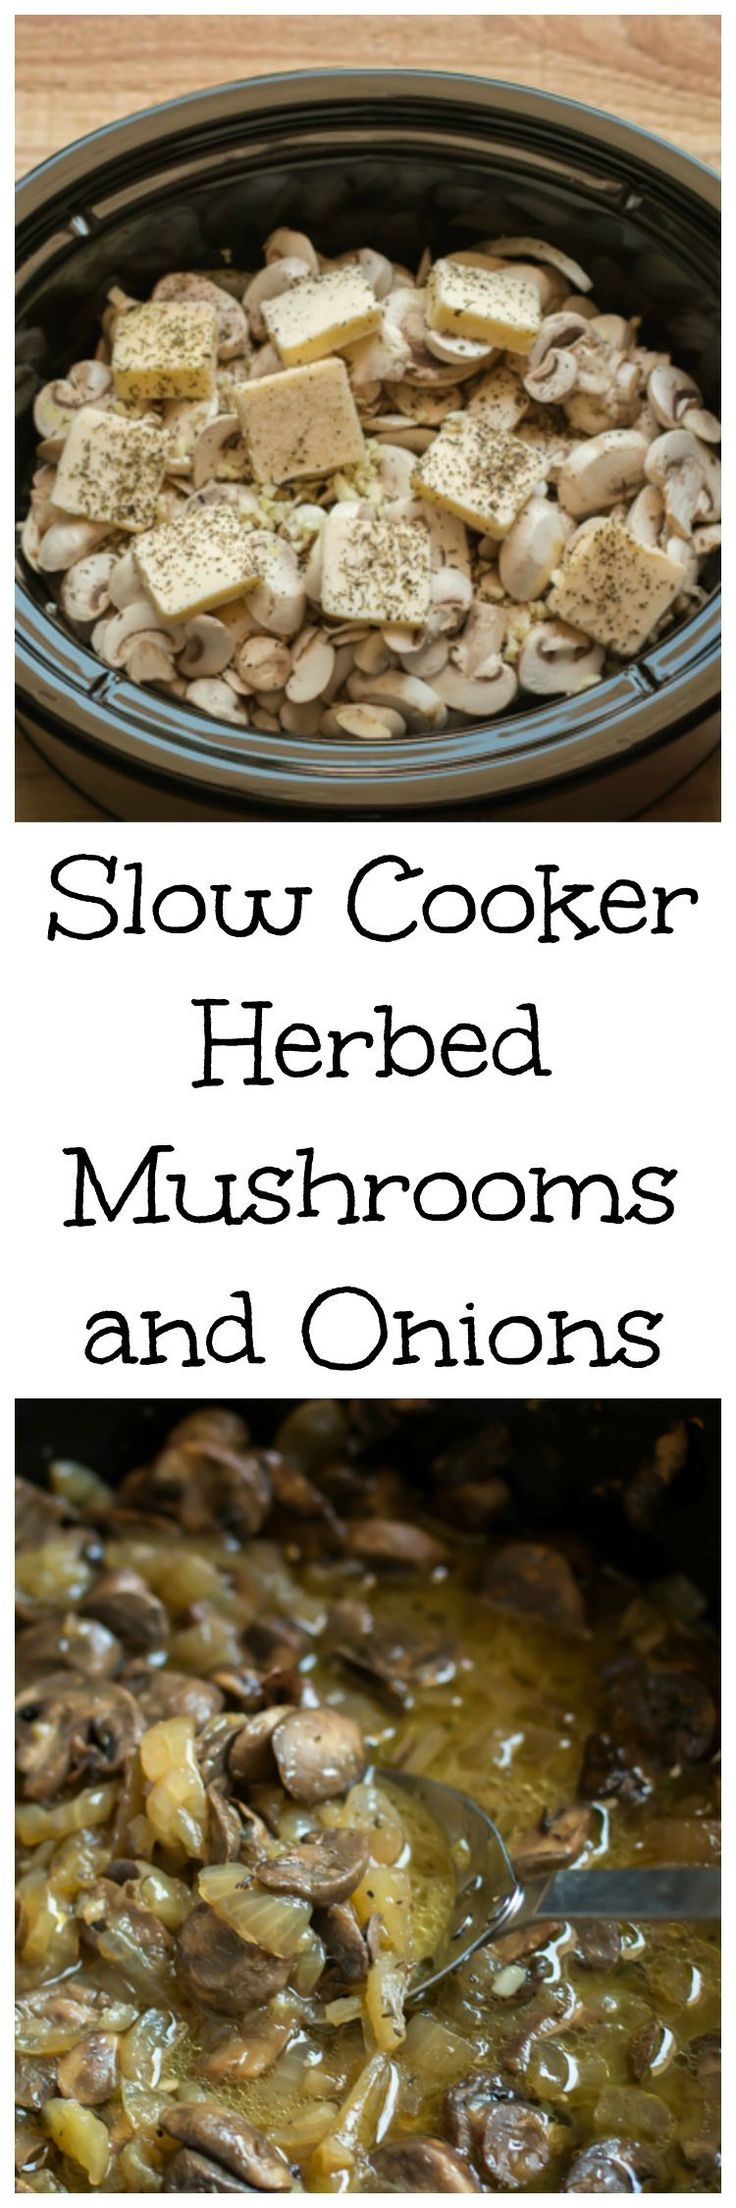 Slow Cooker Herbed Mushrooms and Onions